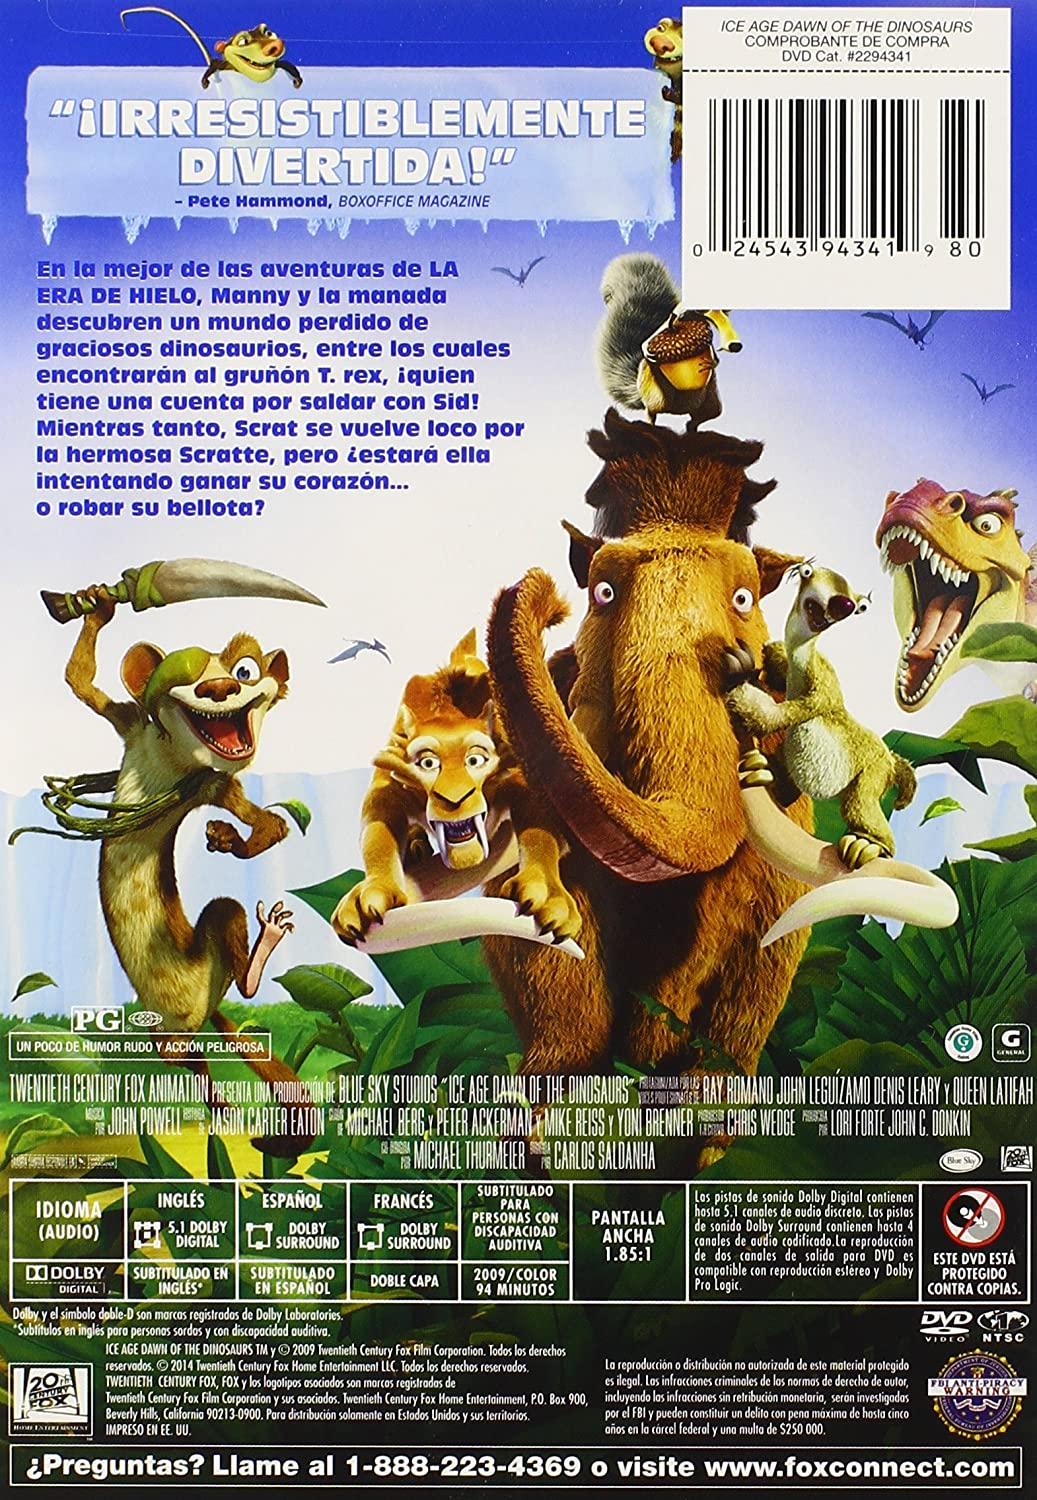 Amazon.com: Ice Age 3: Dawn of the Dinosaurs: Ice Age 3: Dawn of the Dinosaurs: Movies & TV